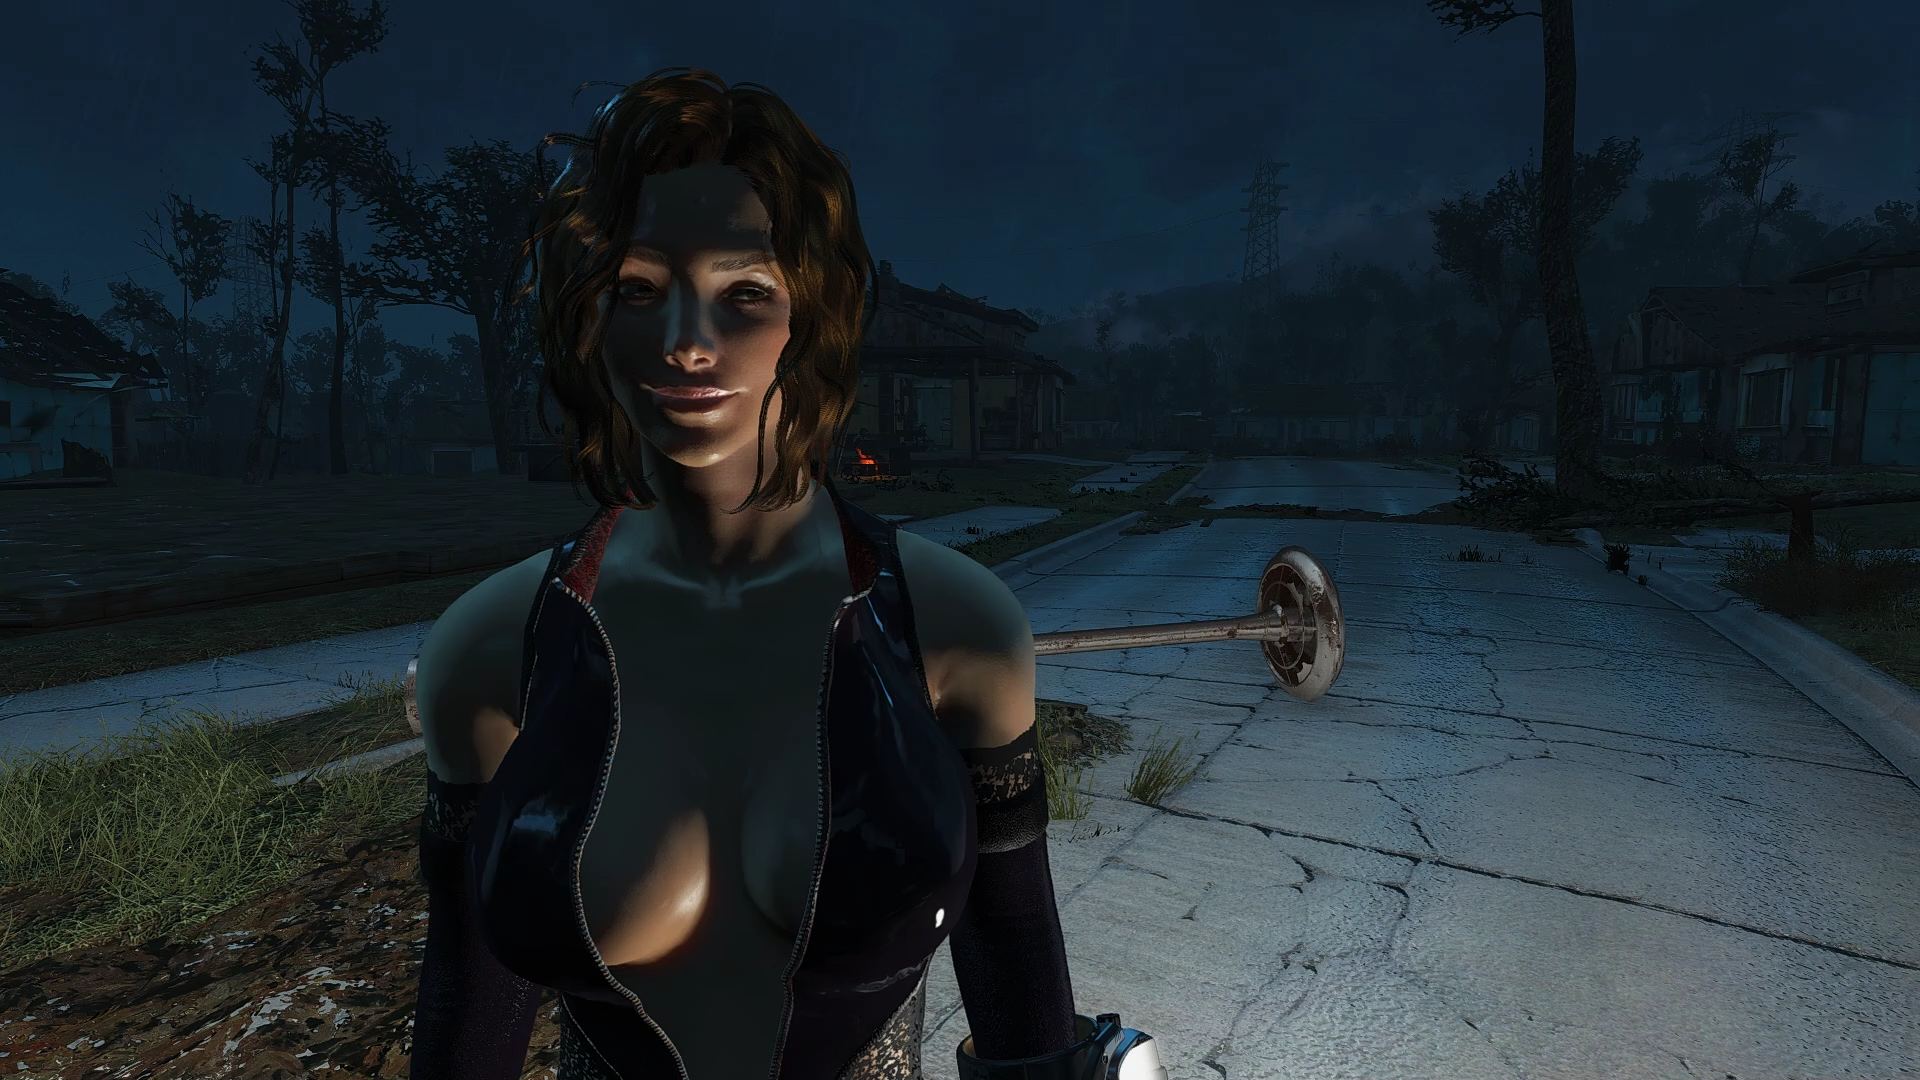 Fallout 4 2020.07.13 - 12.38.53.07.DVR.mp4_snapshot_01.53_[2020.07.13_13.05.14].png